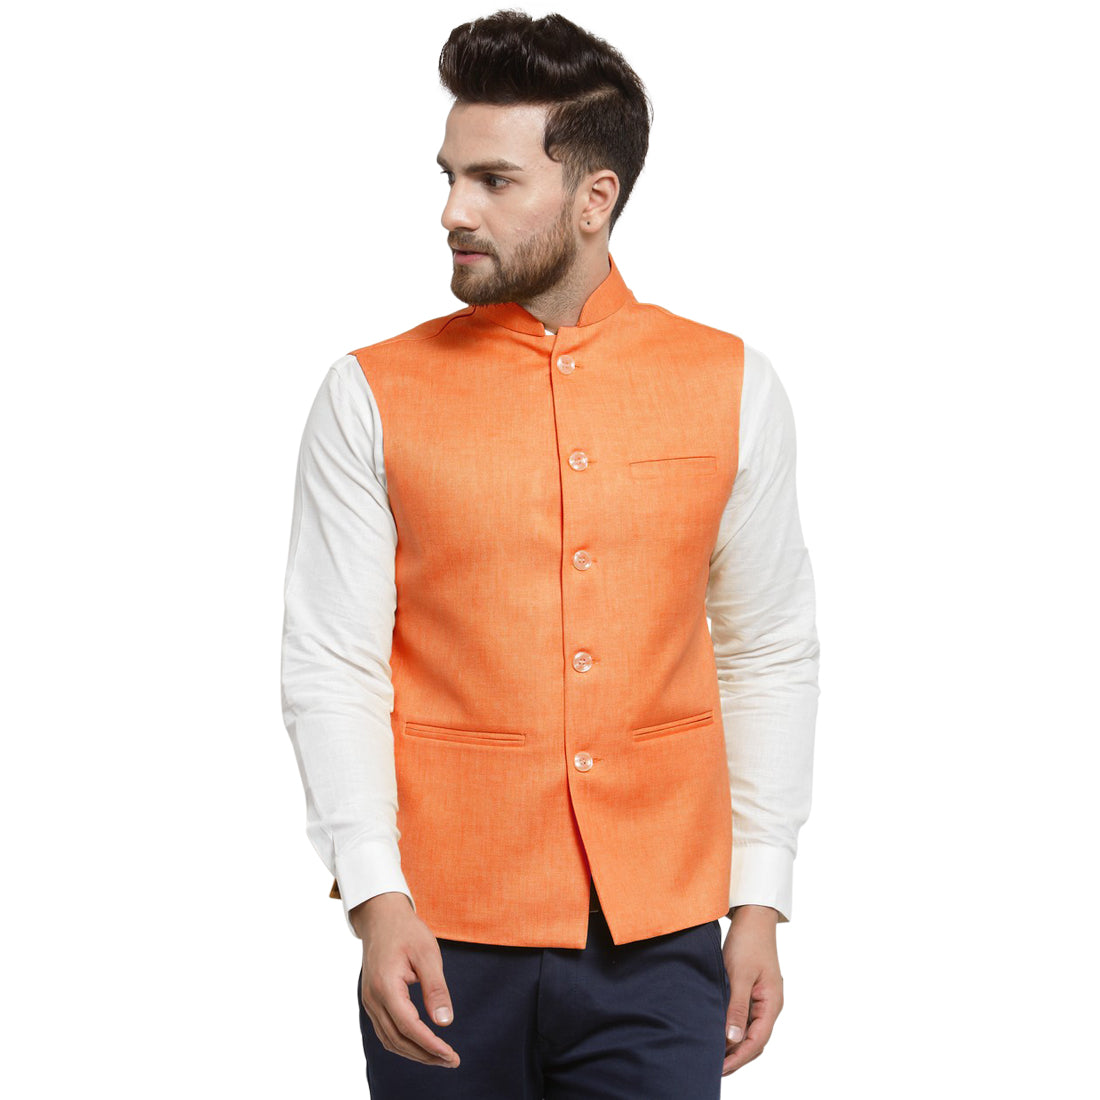 Treemoda Orange Tango Nehru jacket For Men Stylish Latest Design Suitable for Ethnic Wear/Wedding Wear/ Formal Wear/Casual Wear